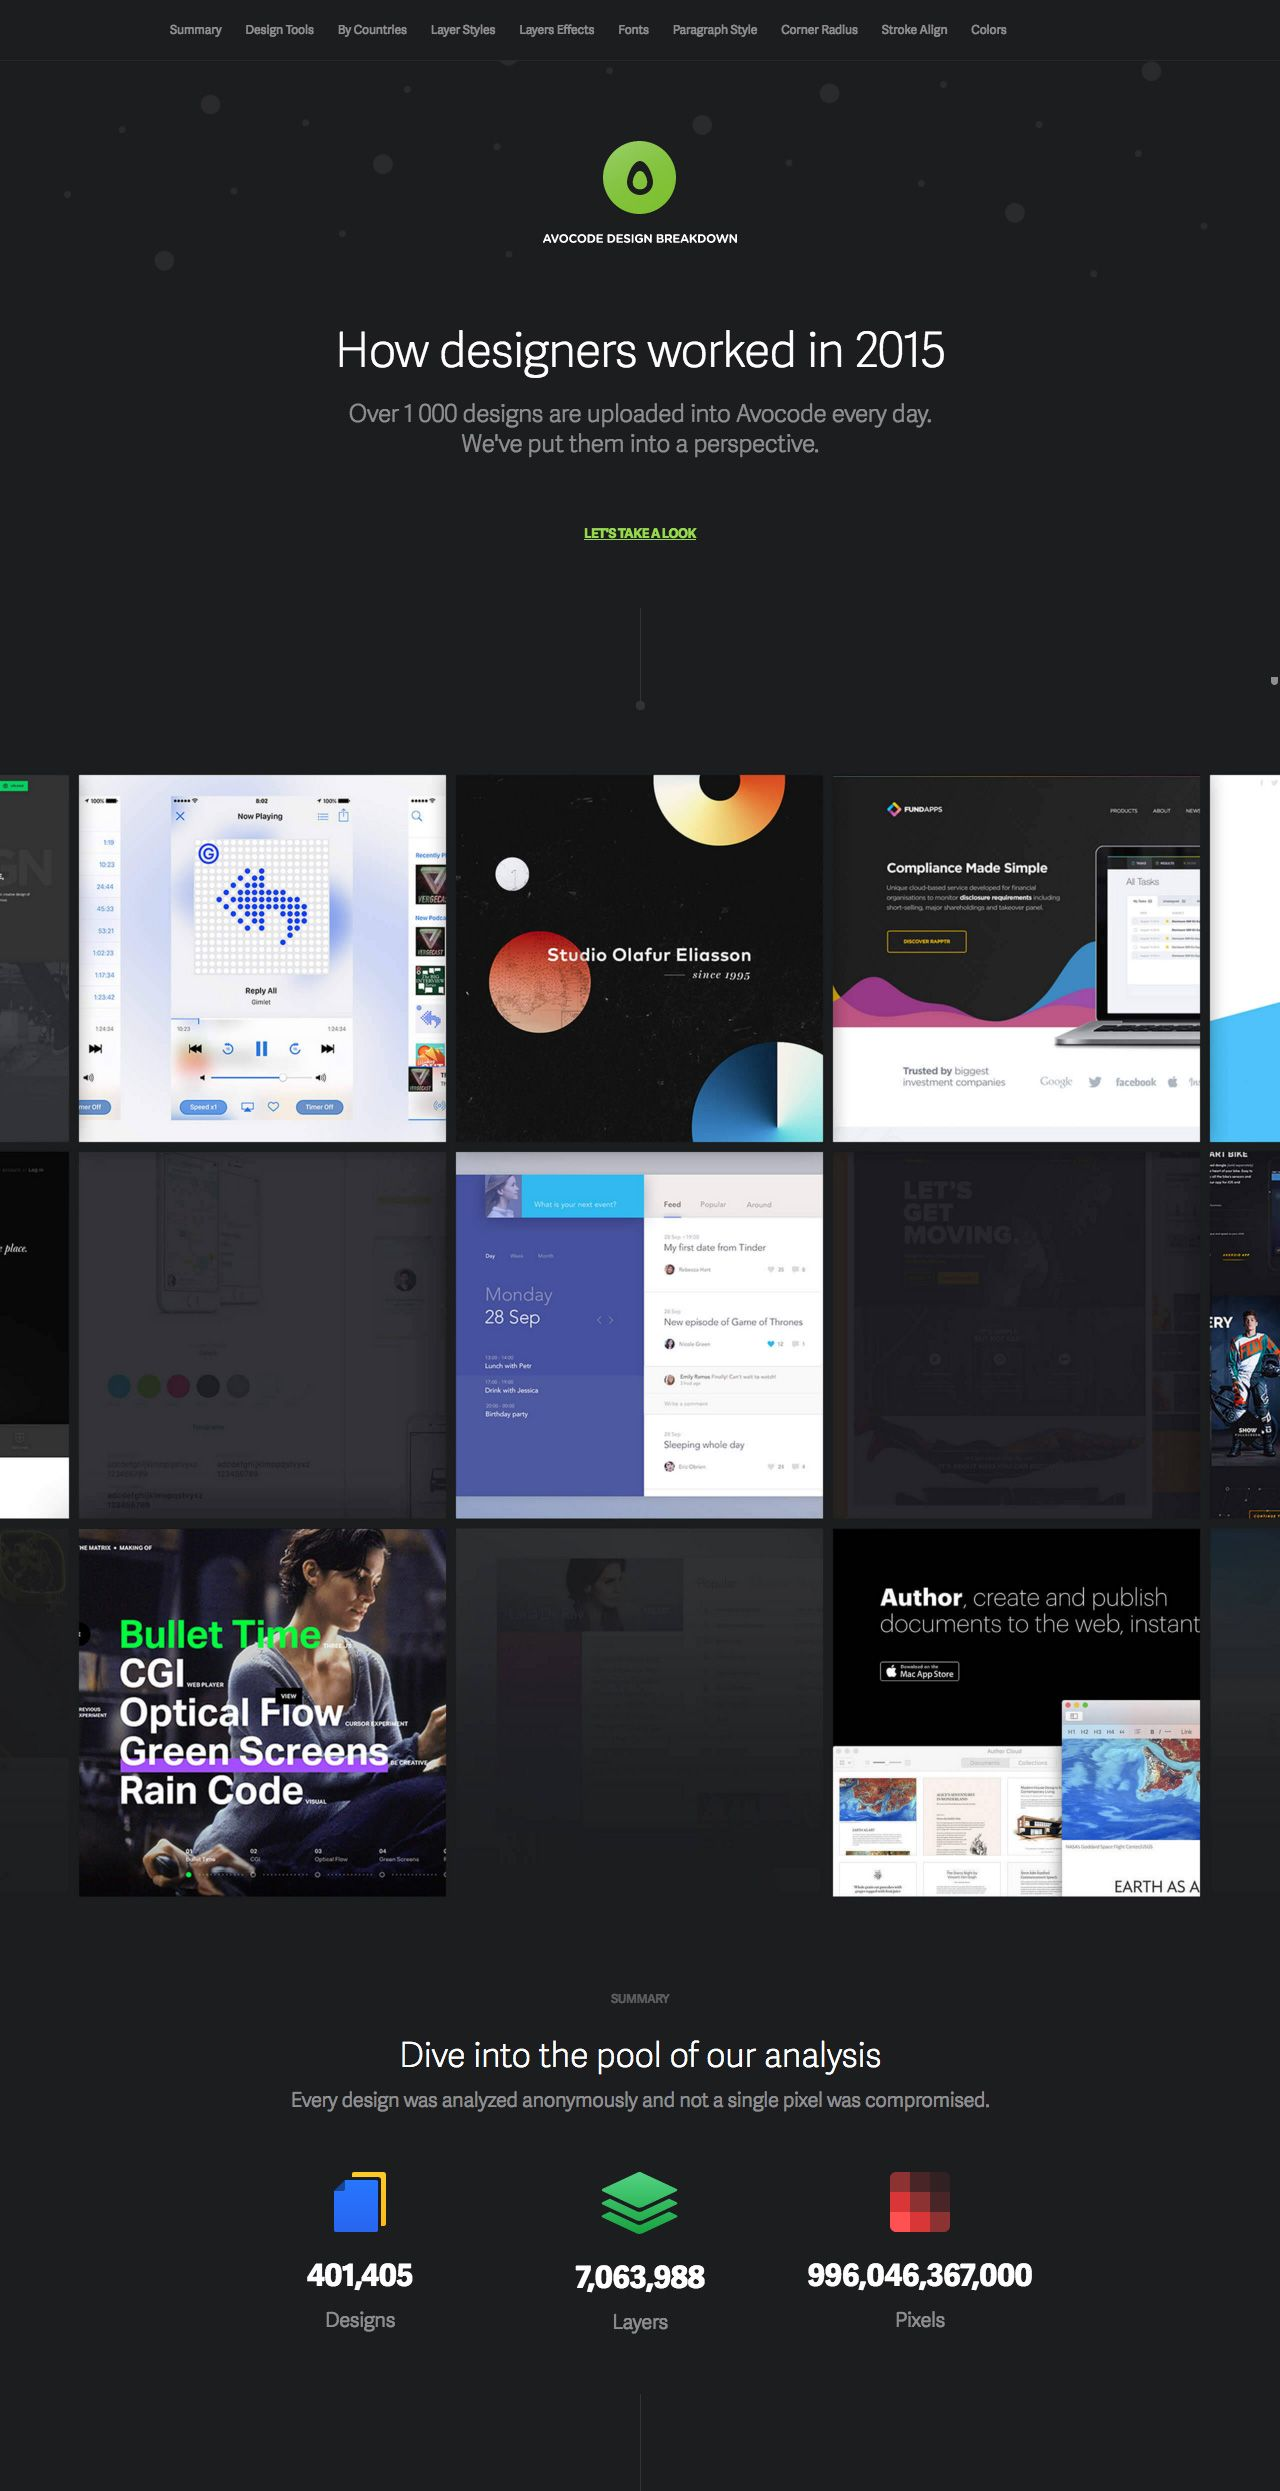 How Designers Worked In 2015 Is A Real Interesting One Pager By Avocode Who Analyzed All The Designs Uploaded To Their Sys Web Design One Page Website Design